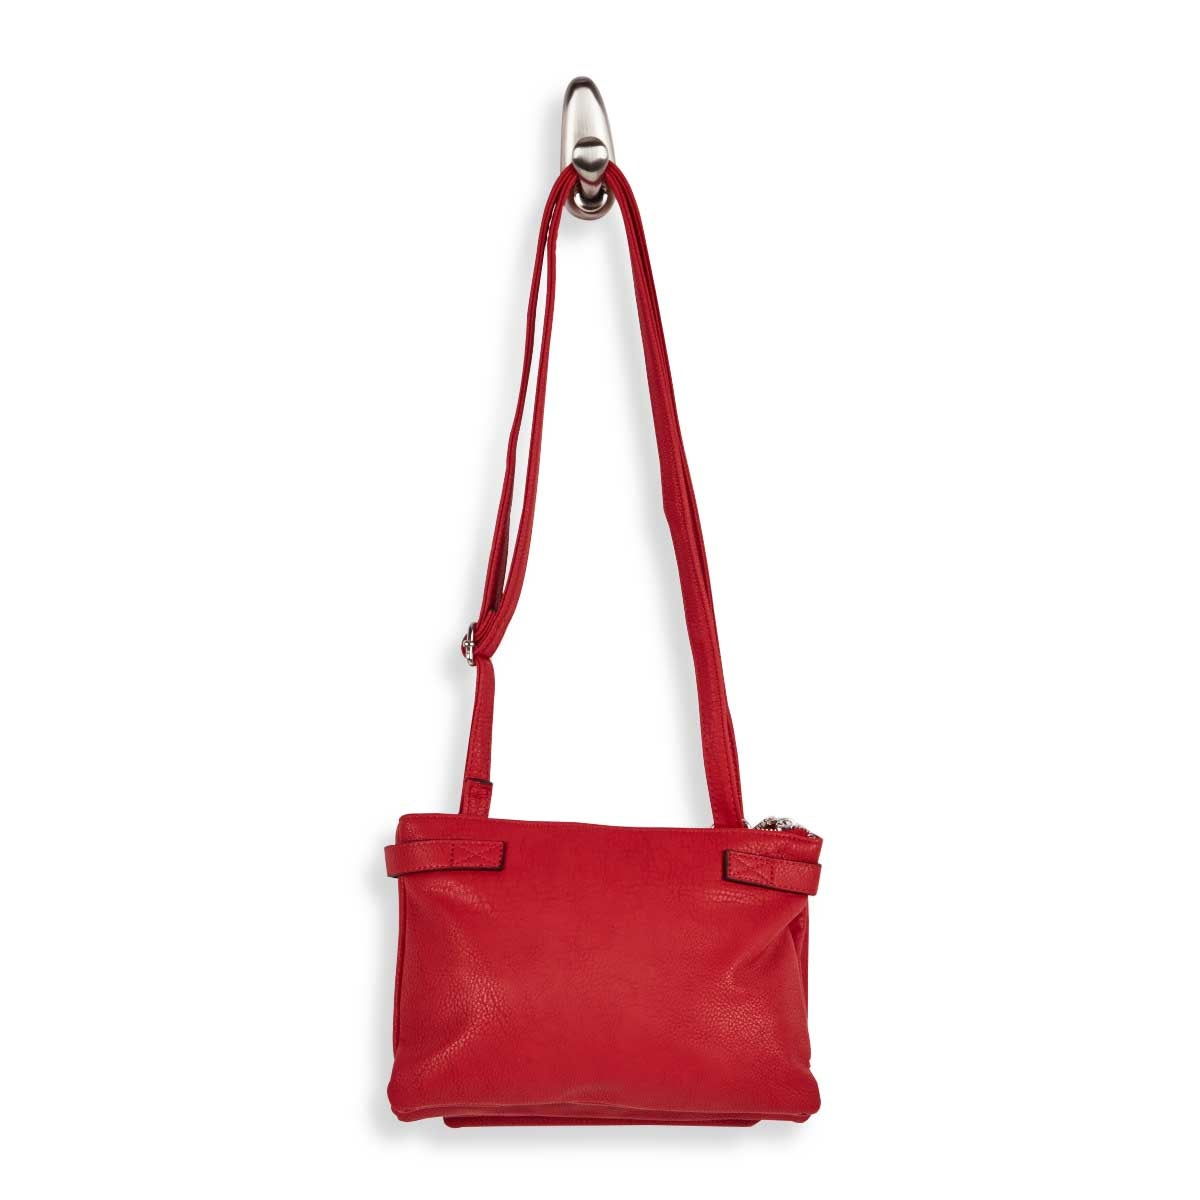 Lds red 2 compartment crossbody